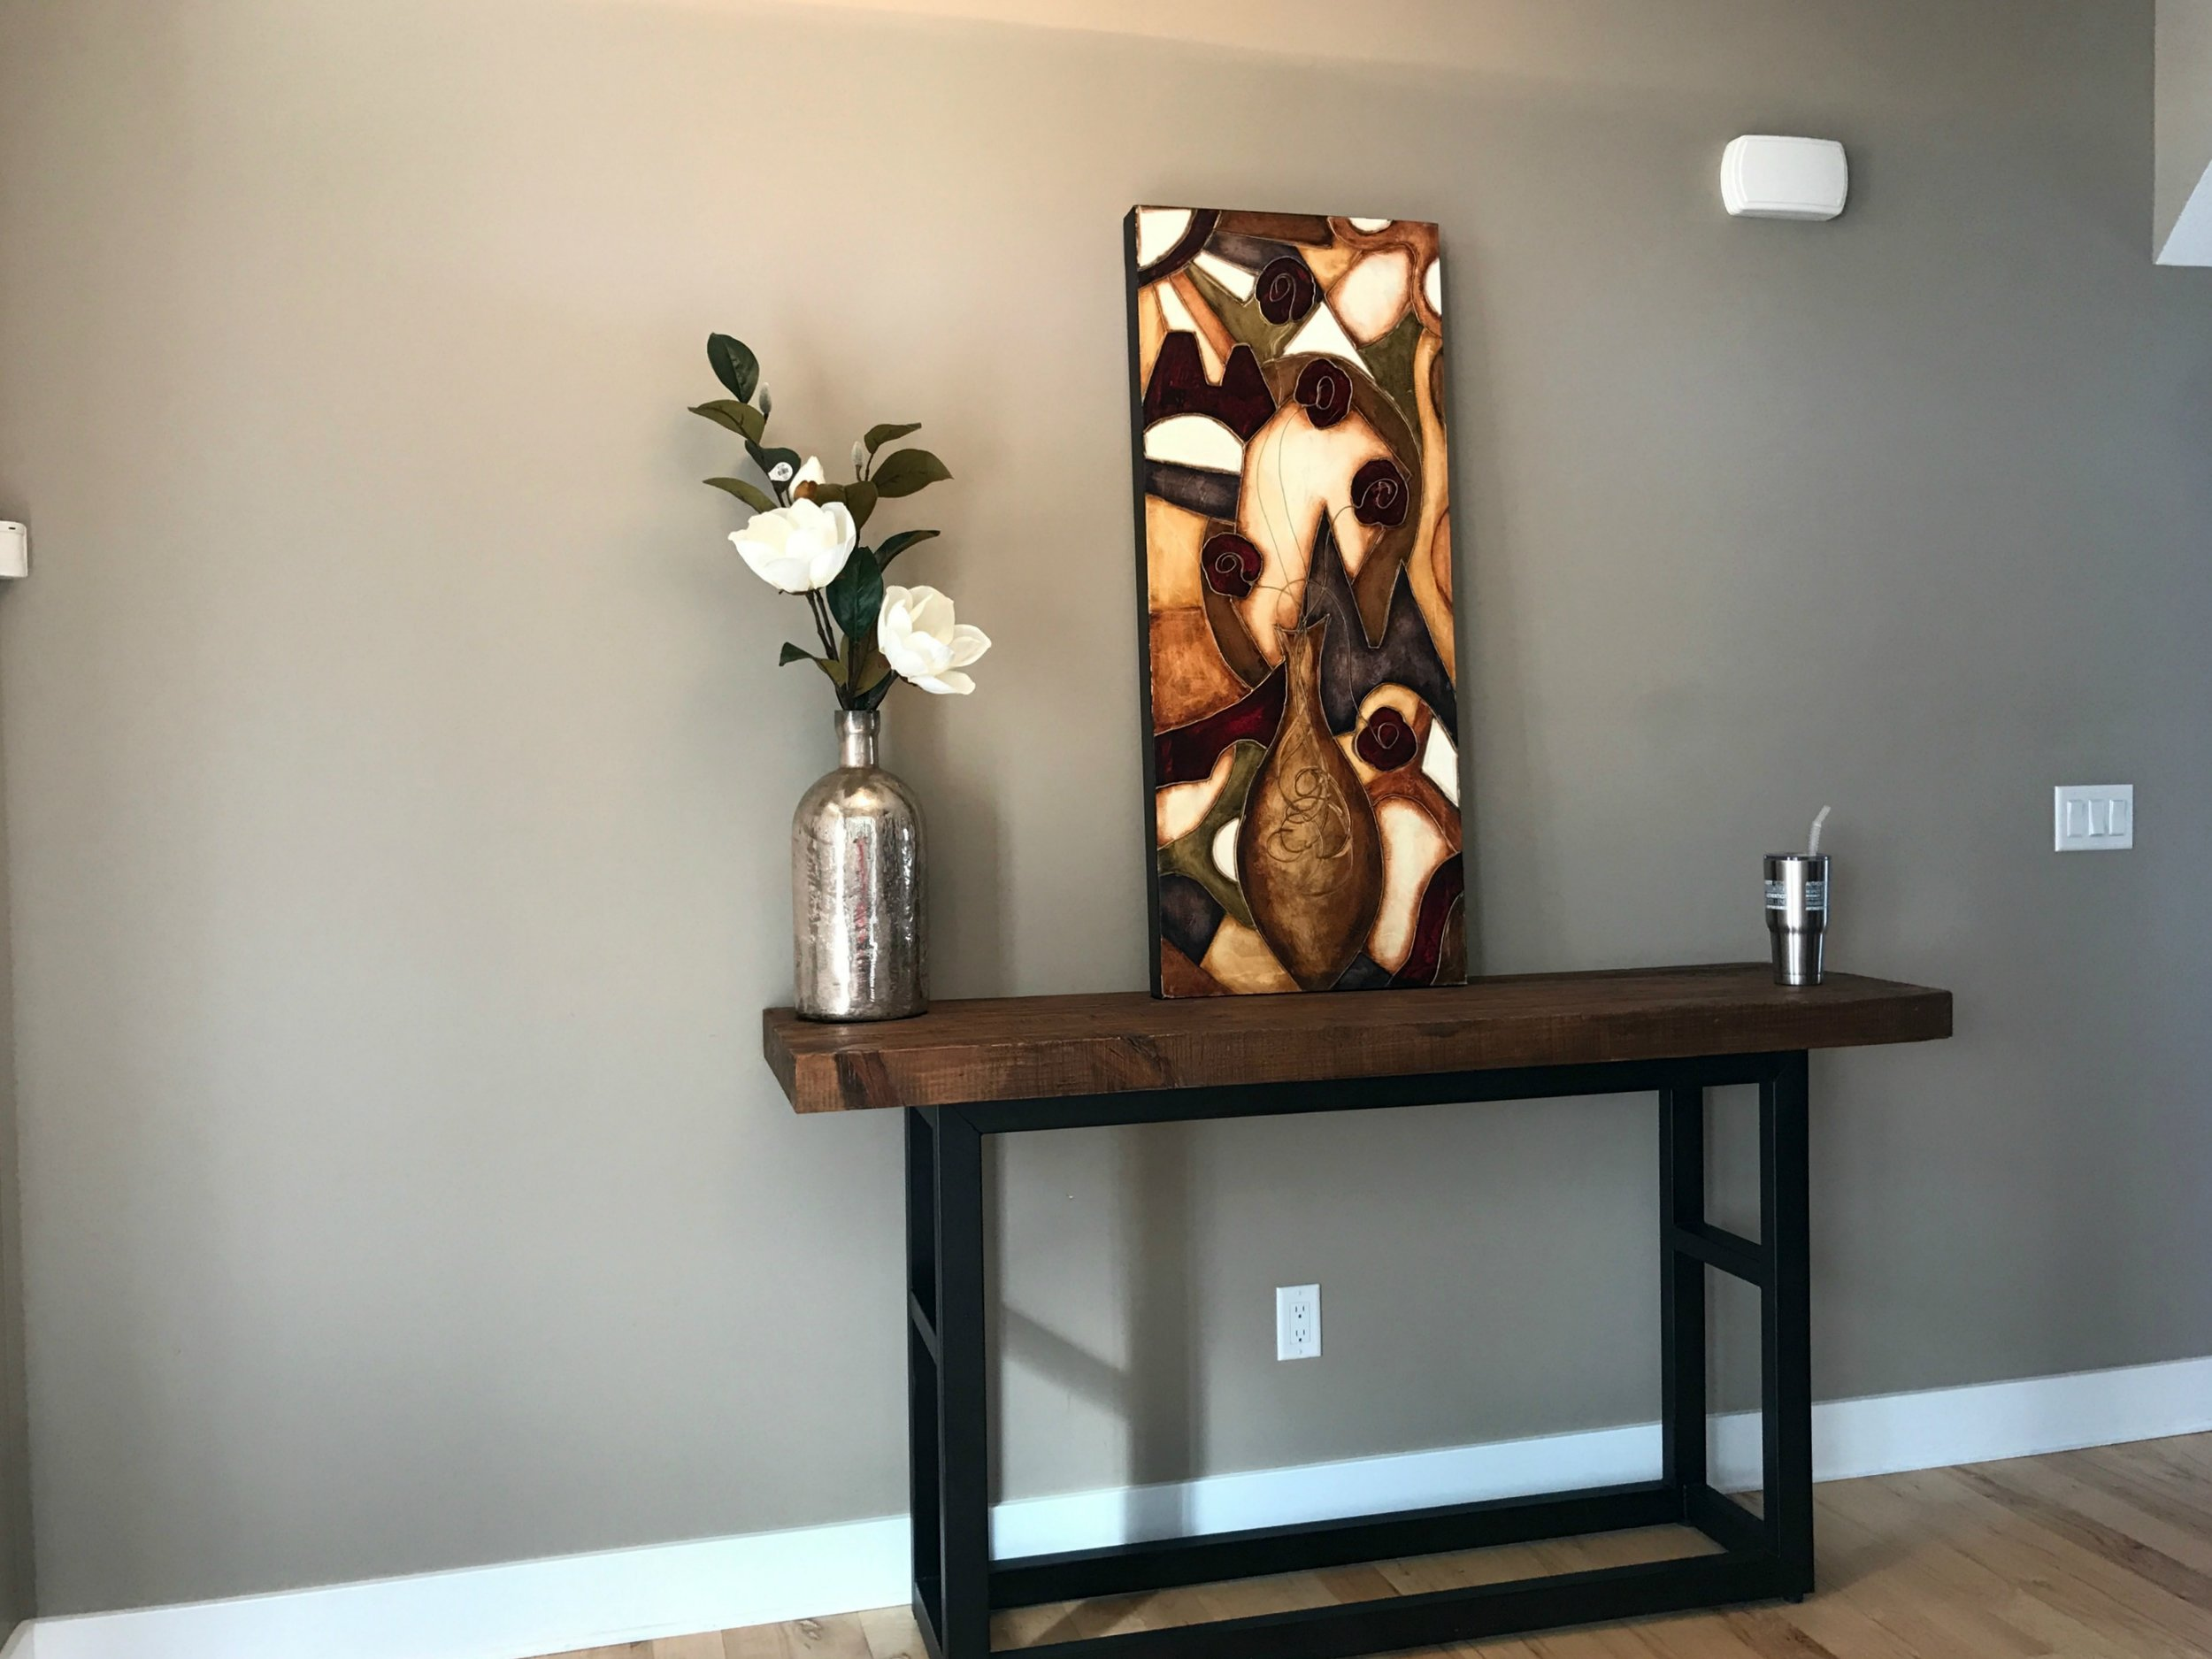 How to Update Your Entryway from hprallandco.com